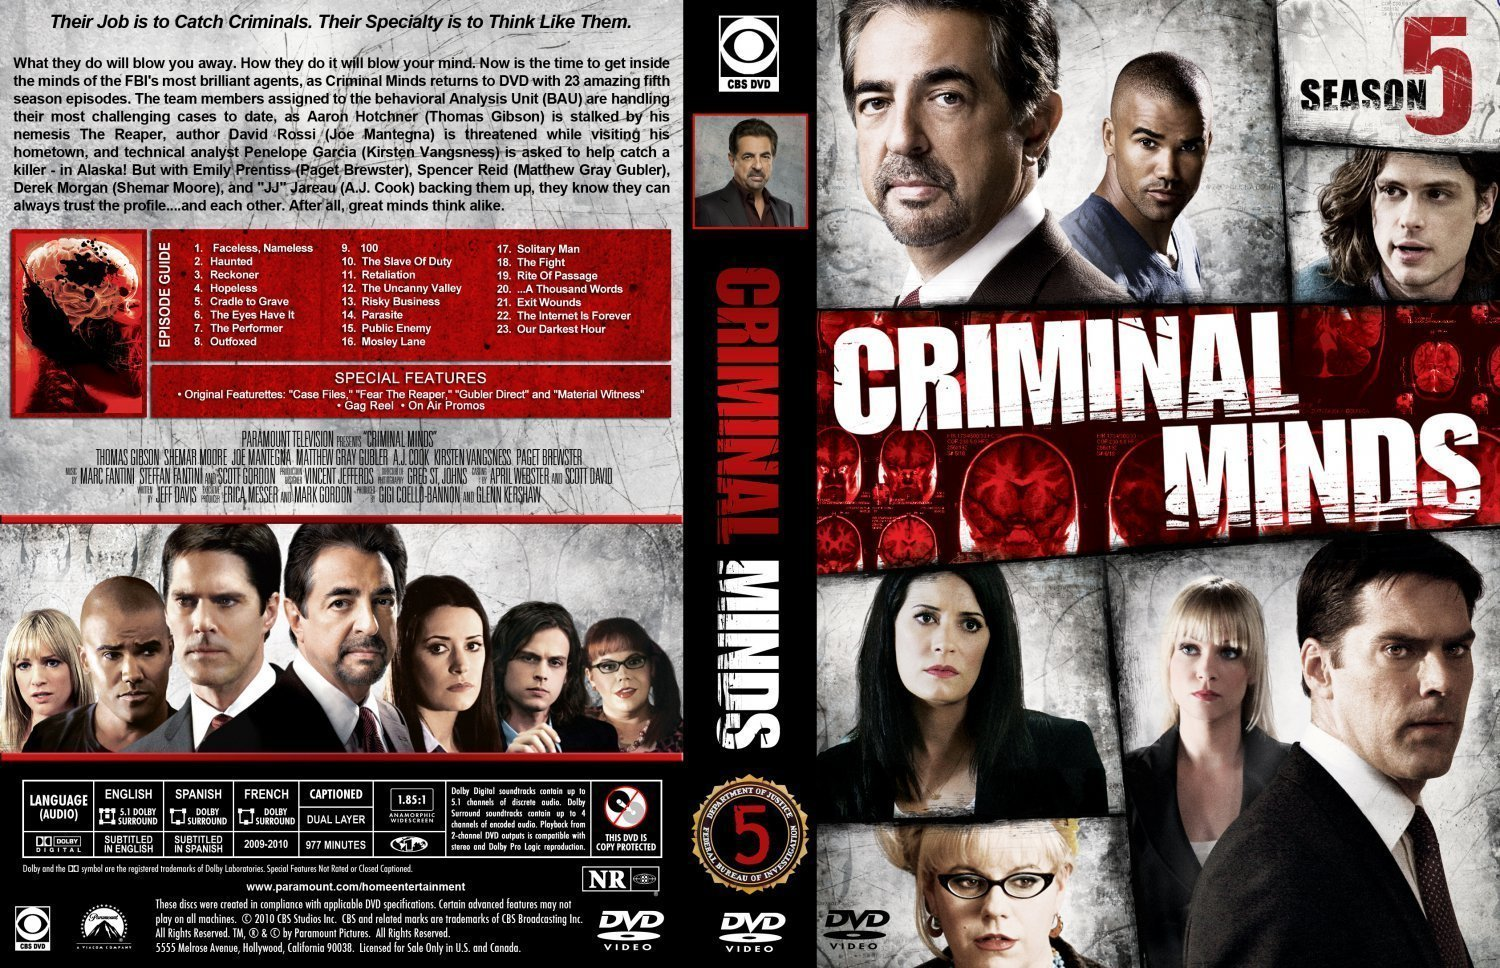 Criminal Minds Season 5 | Dvd Covers and Labels